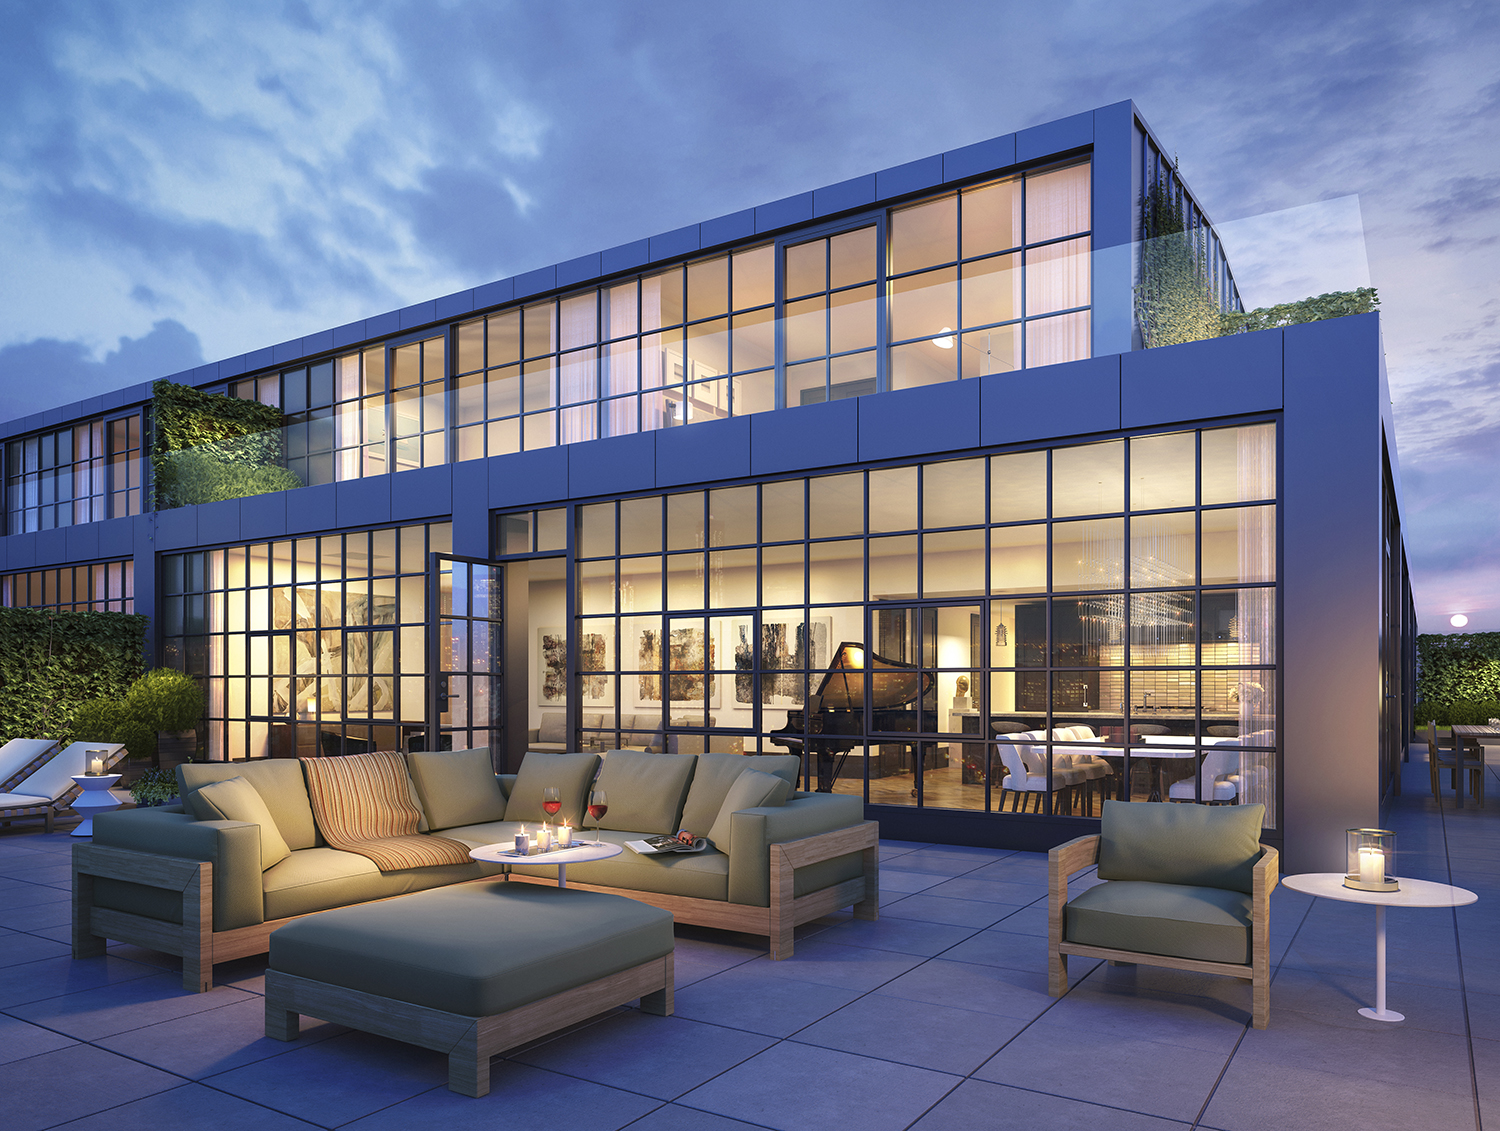 Rendering of lower portion penthouse terrace (sixth floor) at 51 Jay Street